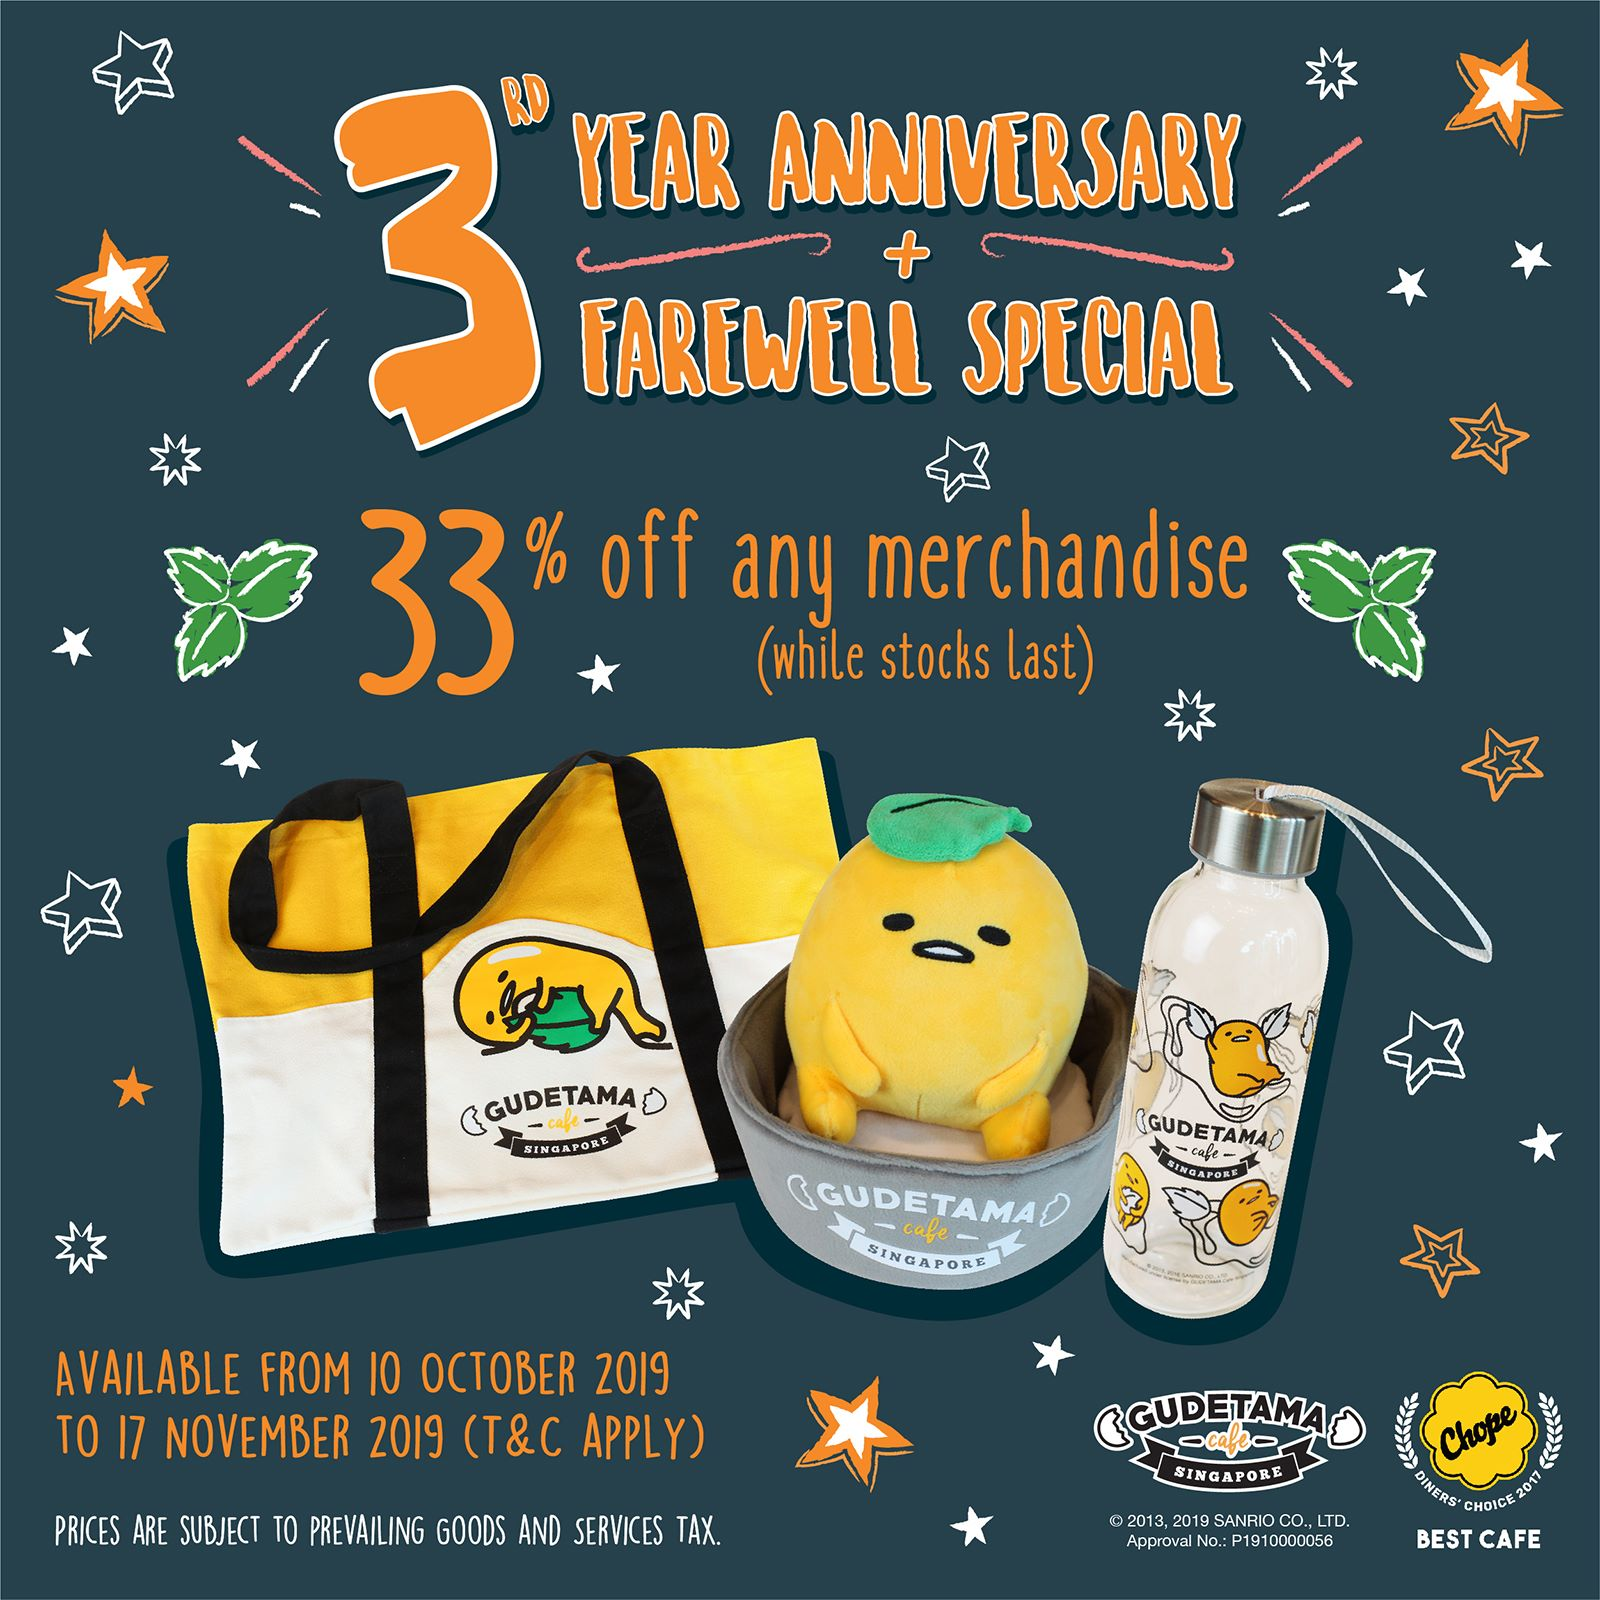 Gudetama Café Singapore 3rd Anniversary & Farewell Special 33% Off Promotion 10 Oct - 17 Nov 2019 | Why Not Deals 1 & Promotions